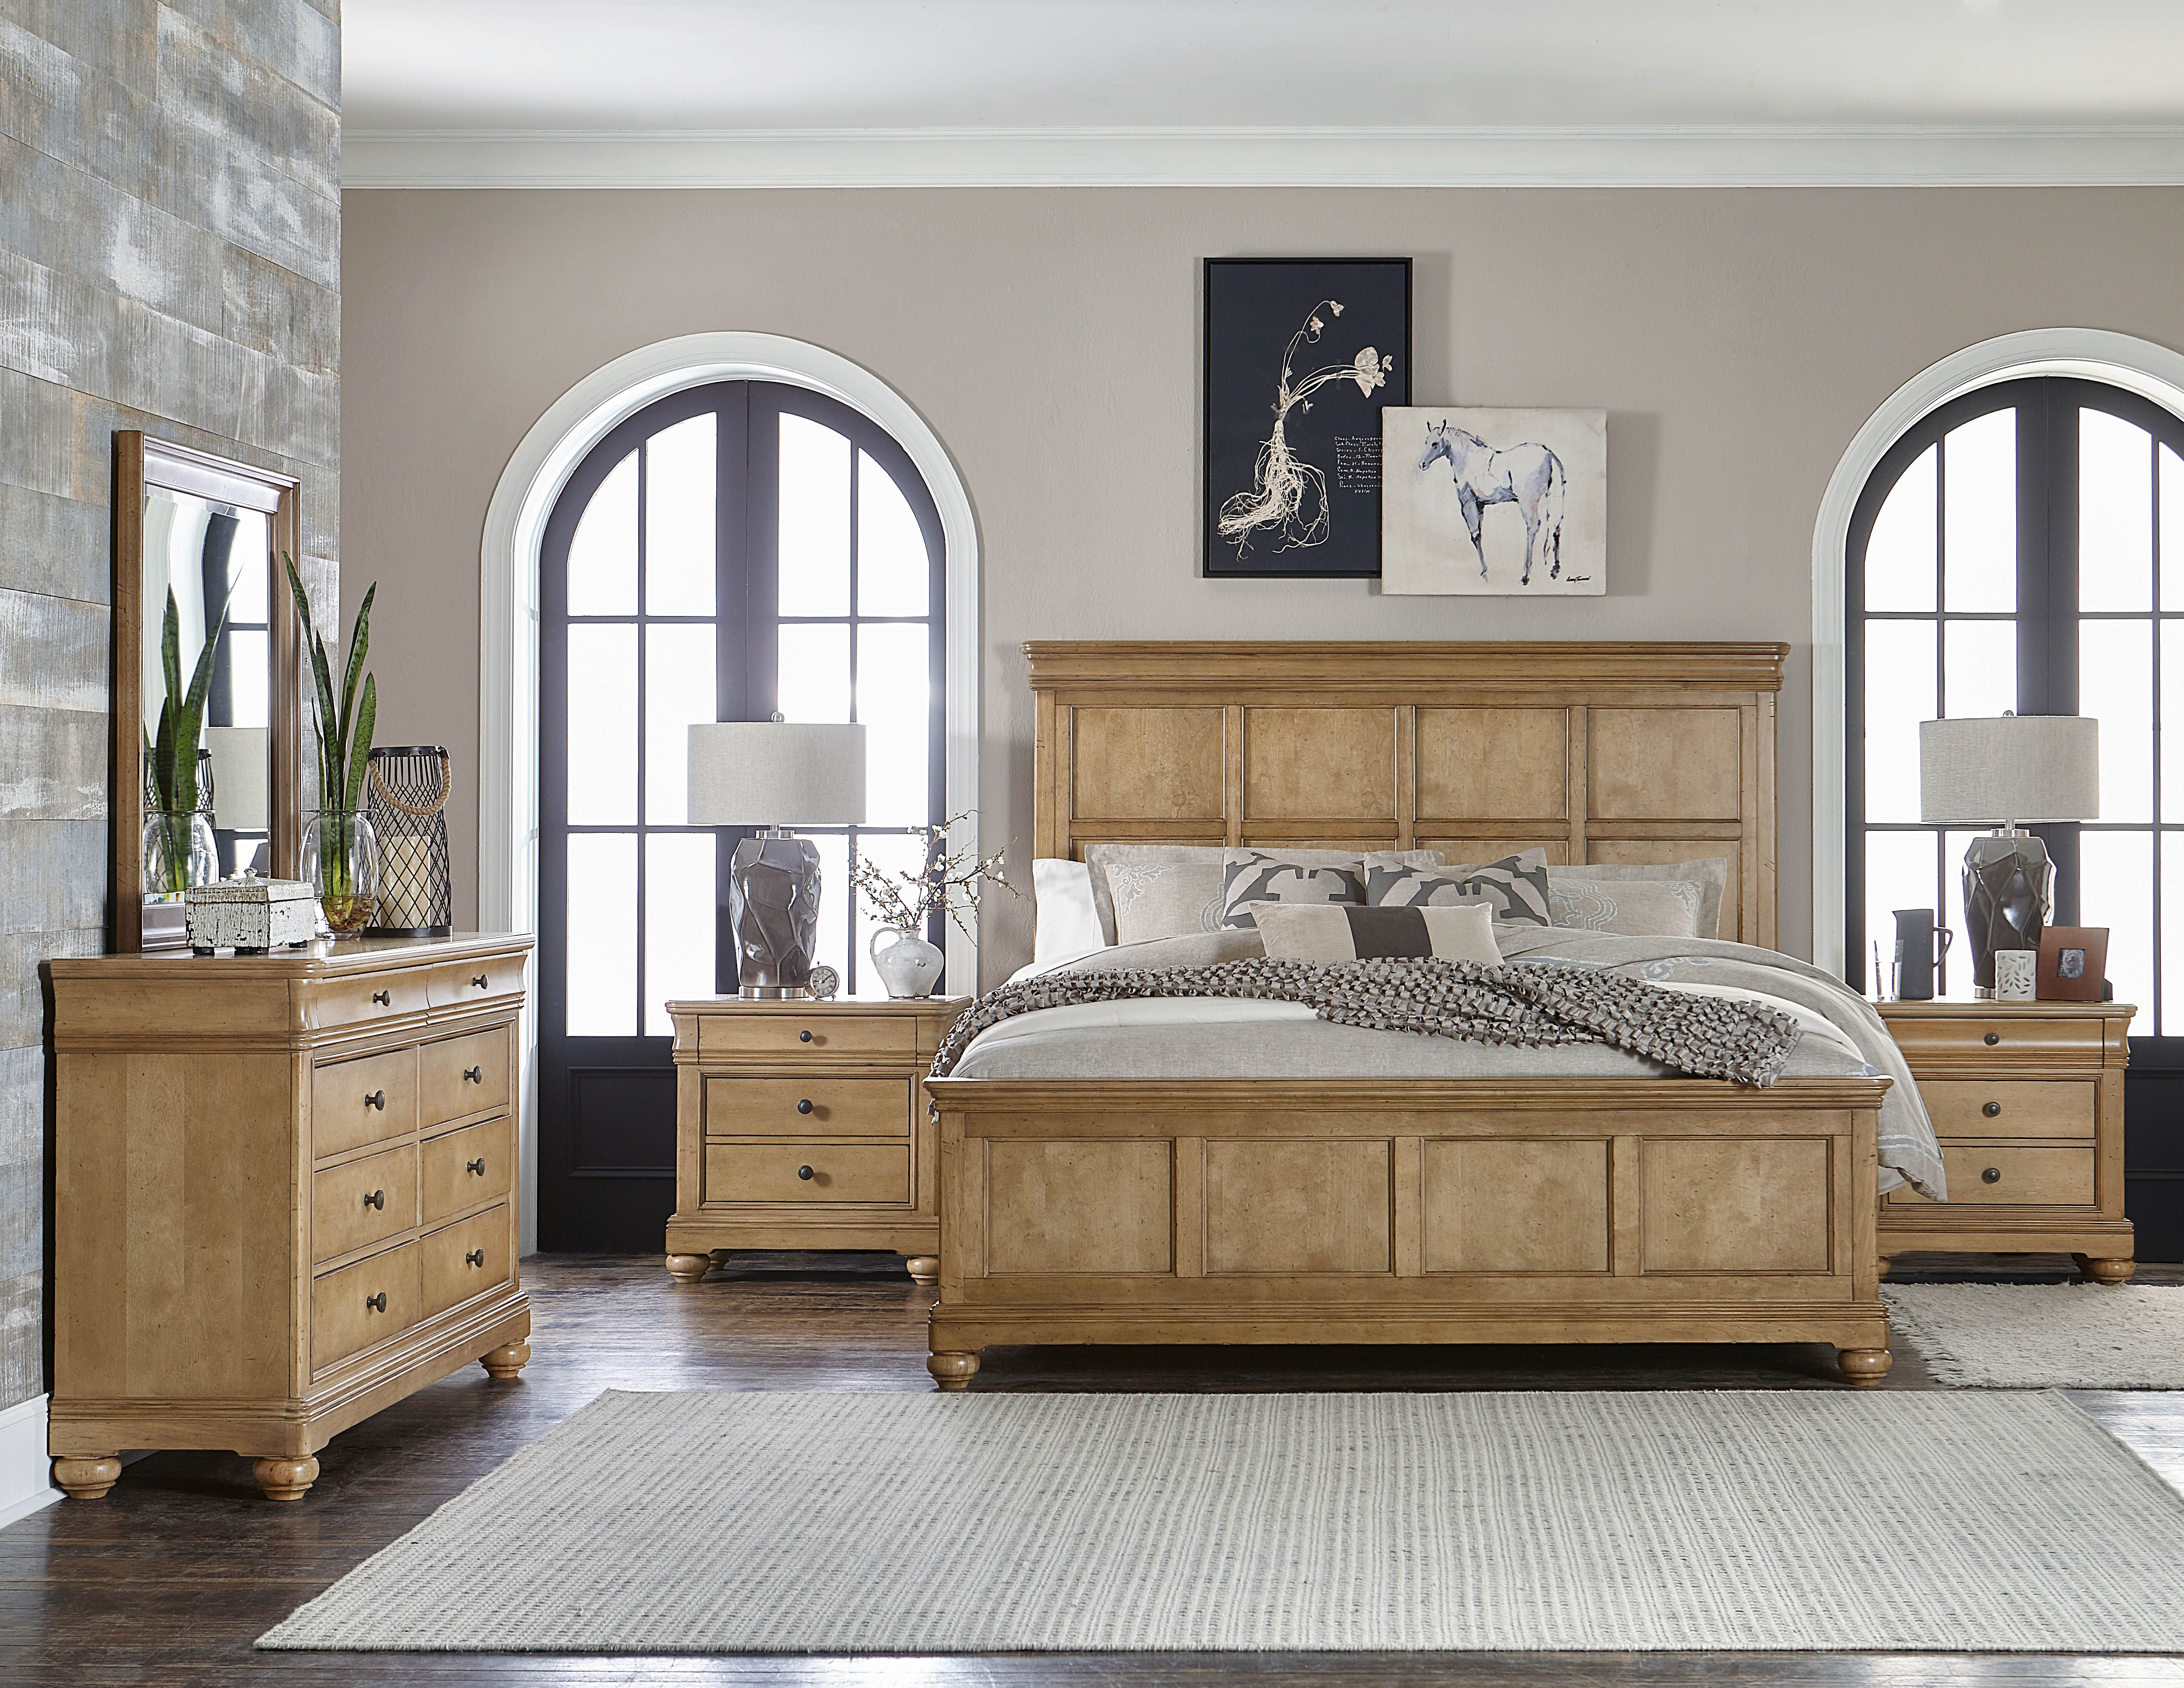 Ashby woods bedroom shown with panel bed legacy classic furniture